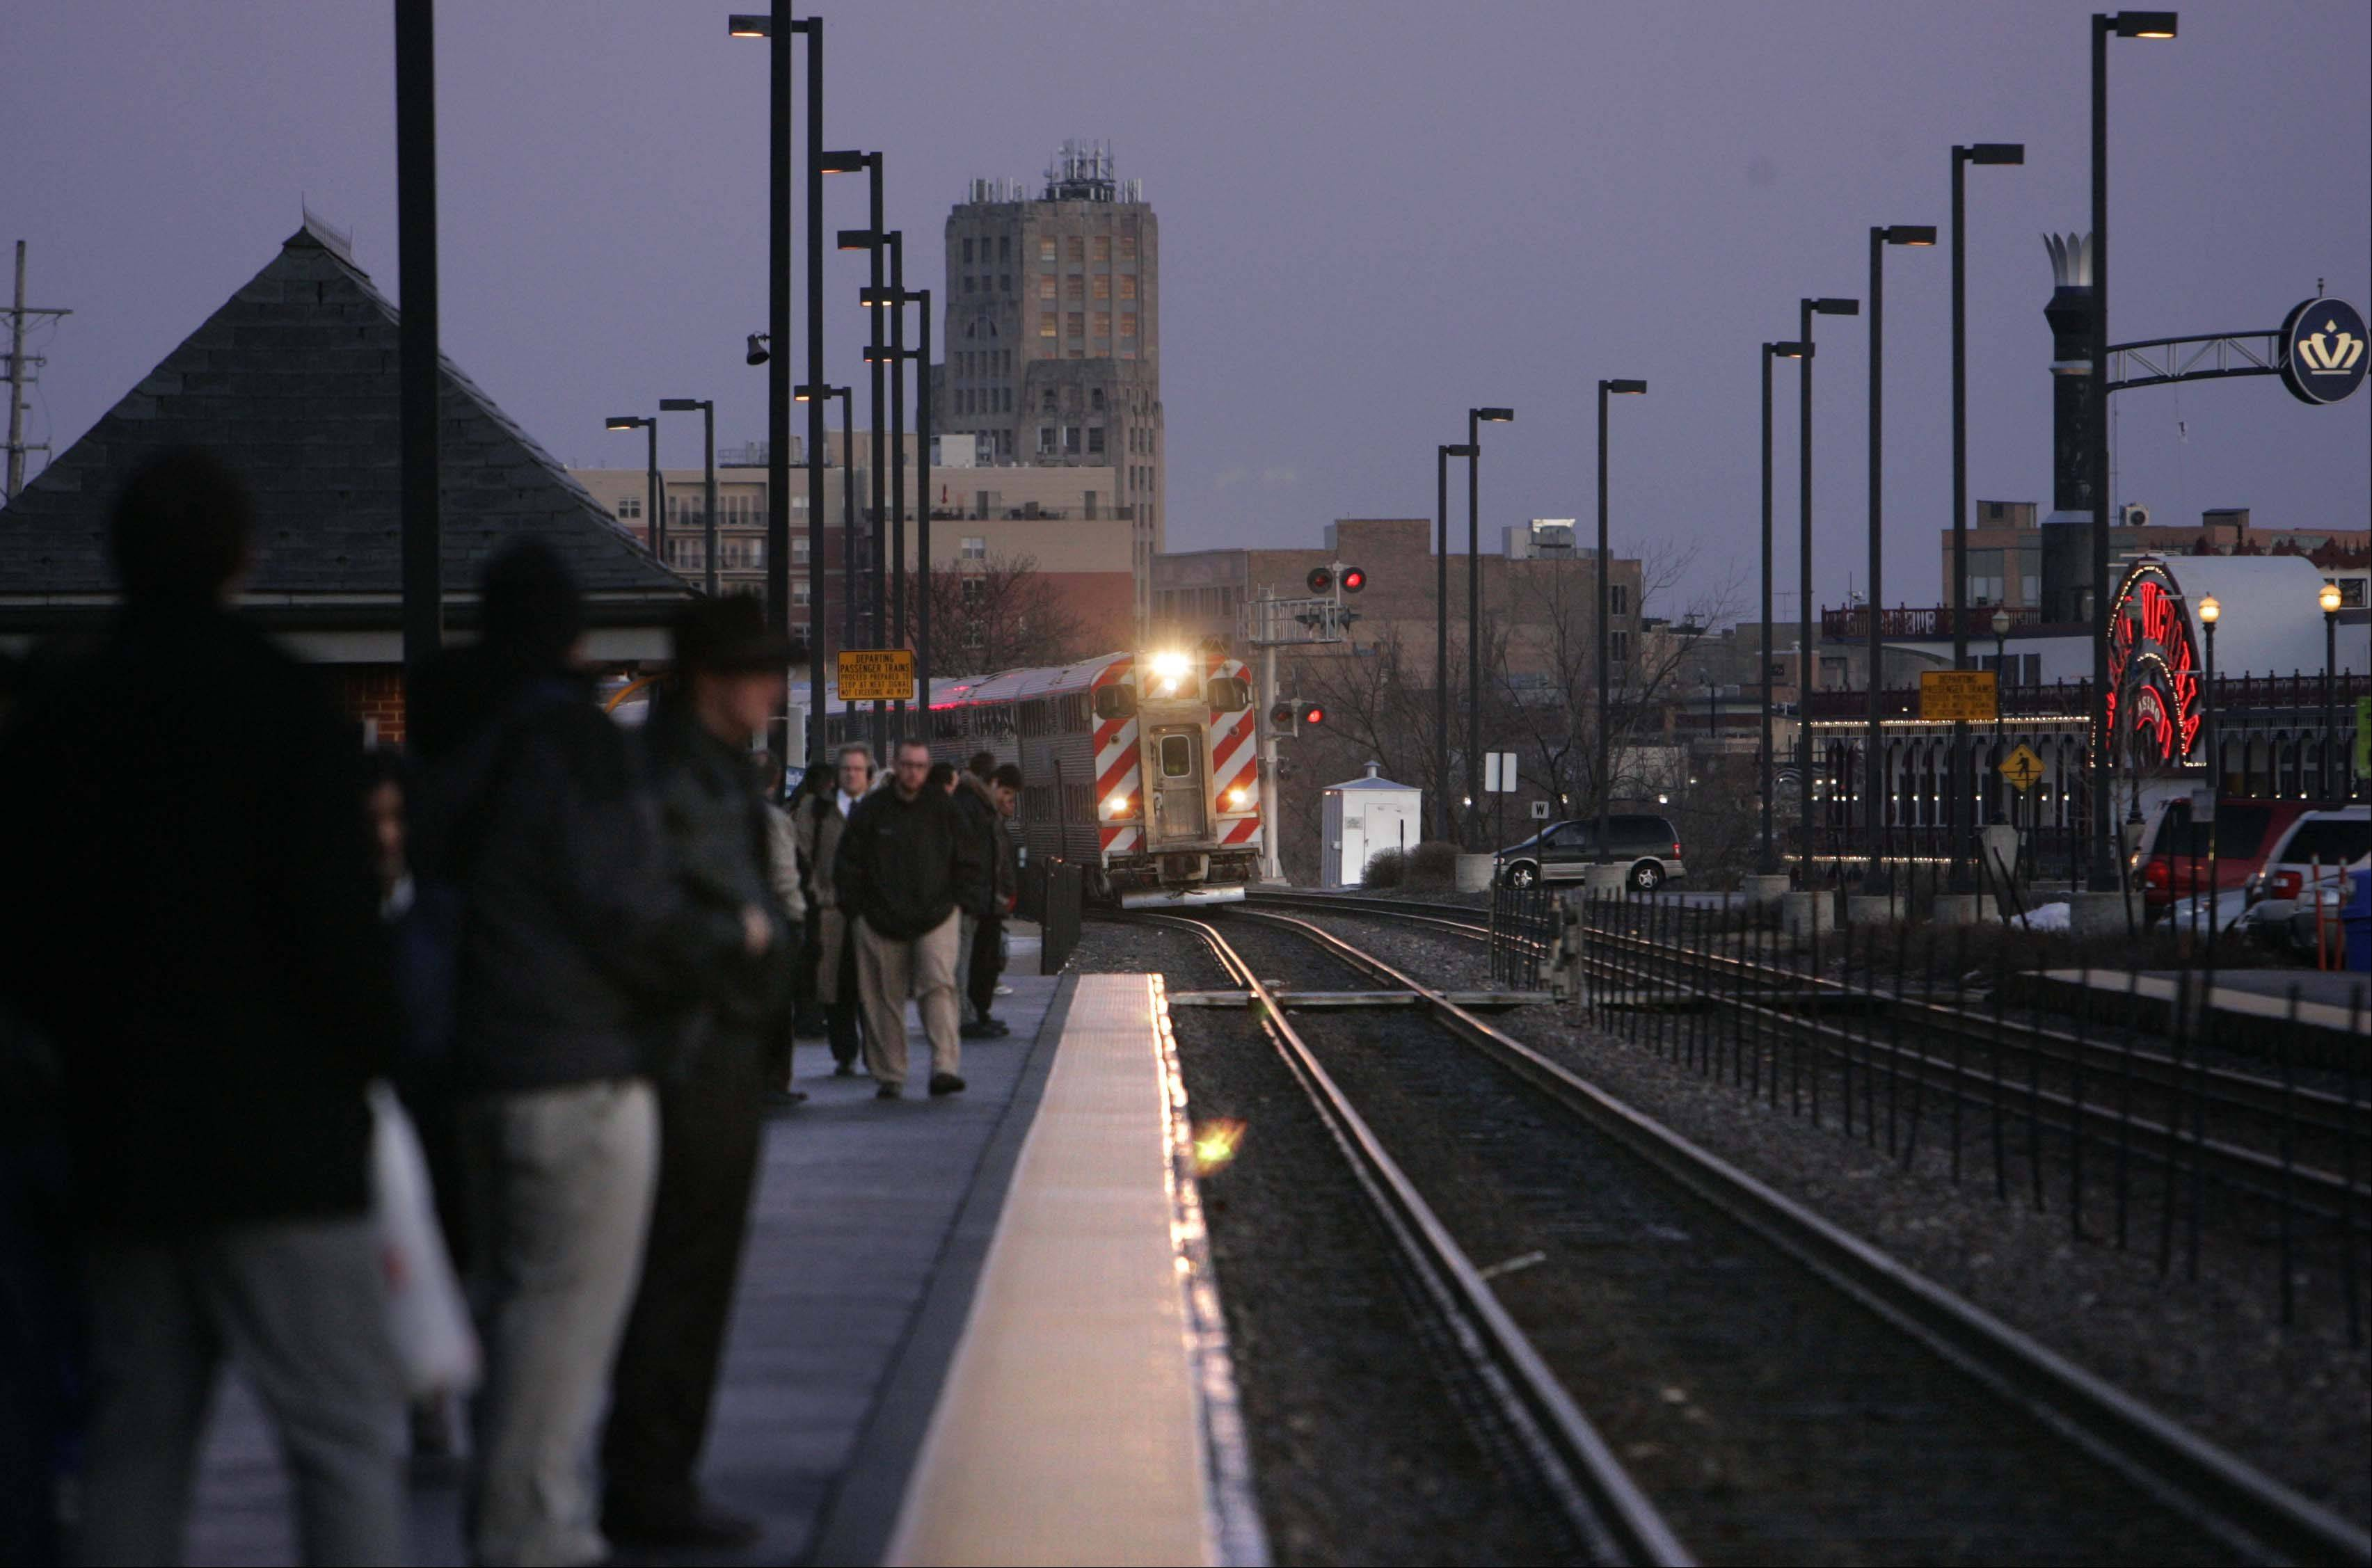 A Metra train rolls into Elgin Tuesday, the day before fares spike by 30 percent for 10-ride tickets and 29 percent for monthly passes. Officials say rising costs and past financial mismanagement have made the hikes necessary, but many commuters are unhappy with the added expense.